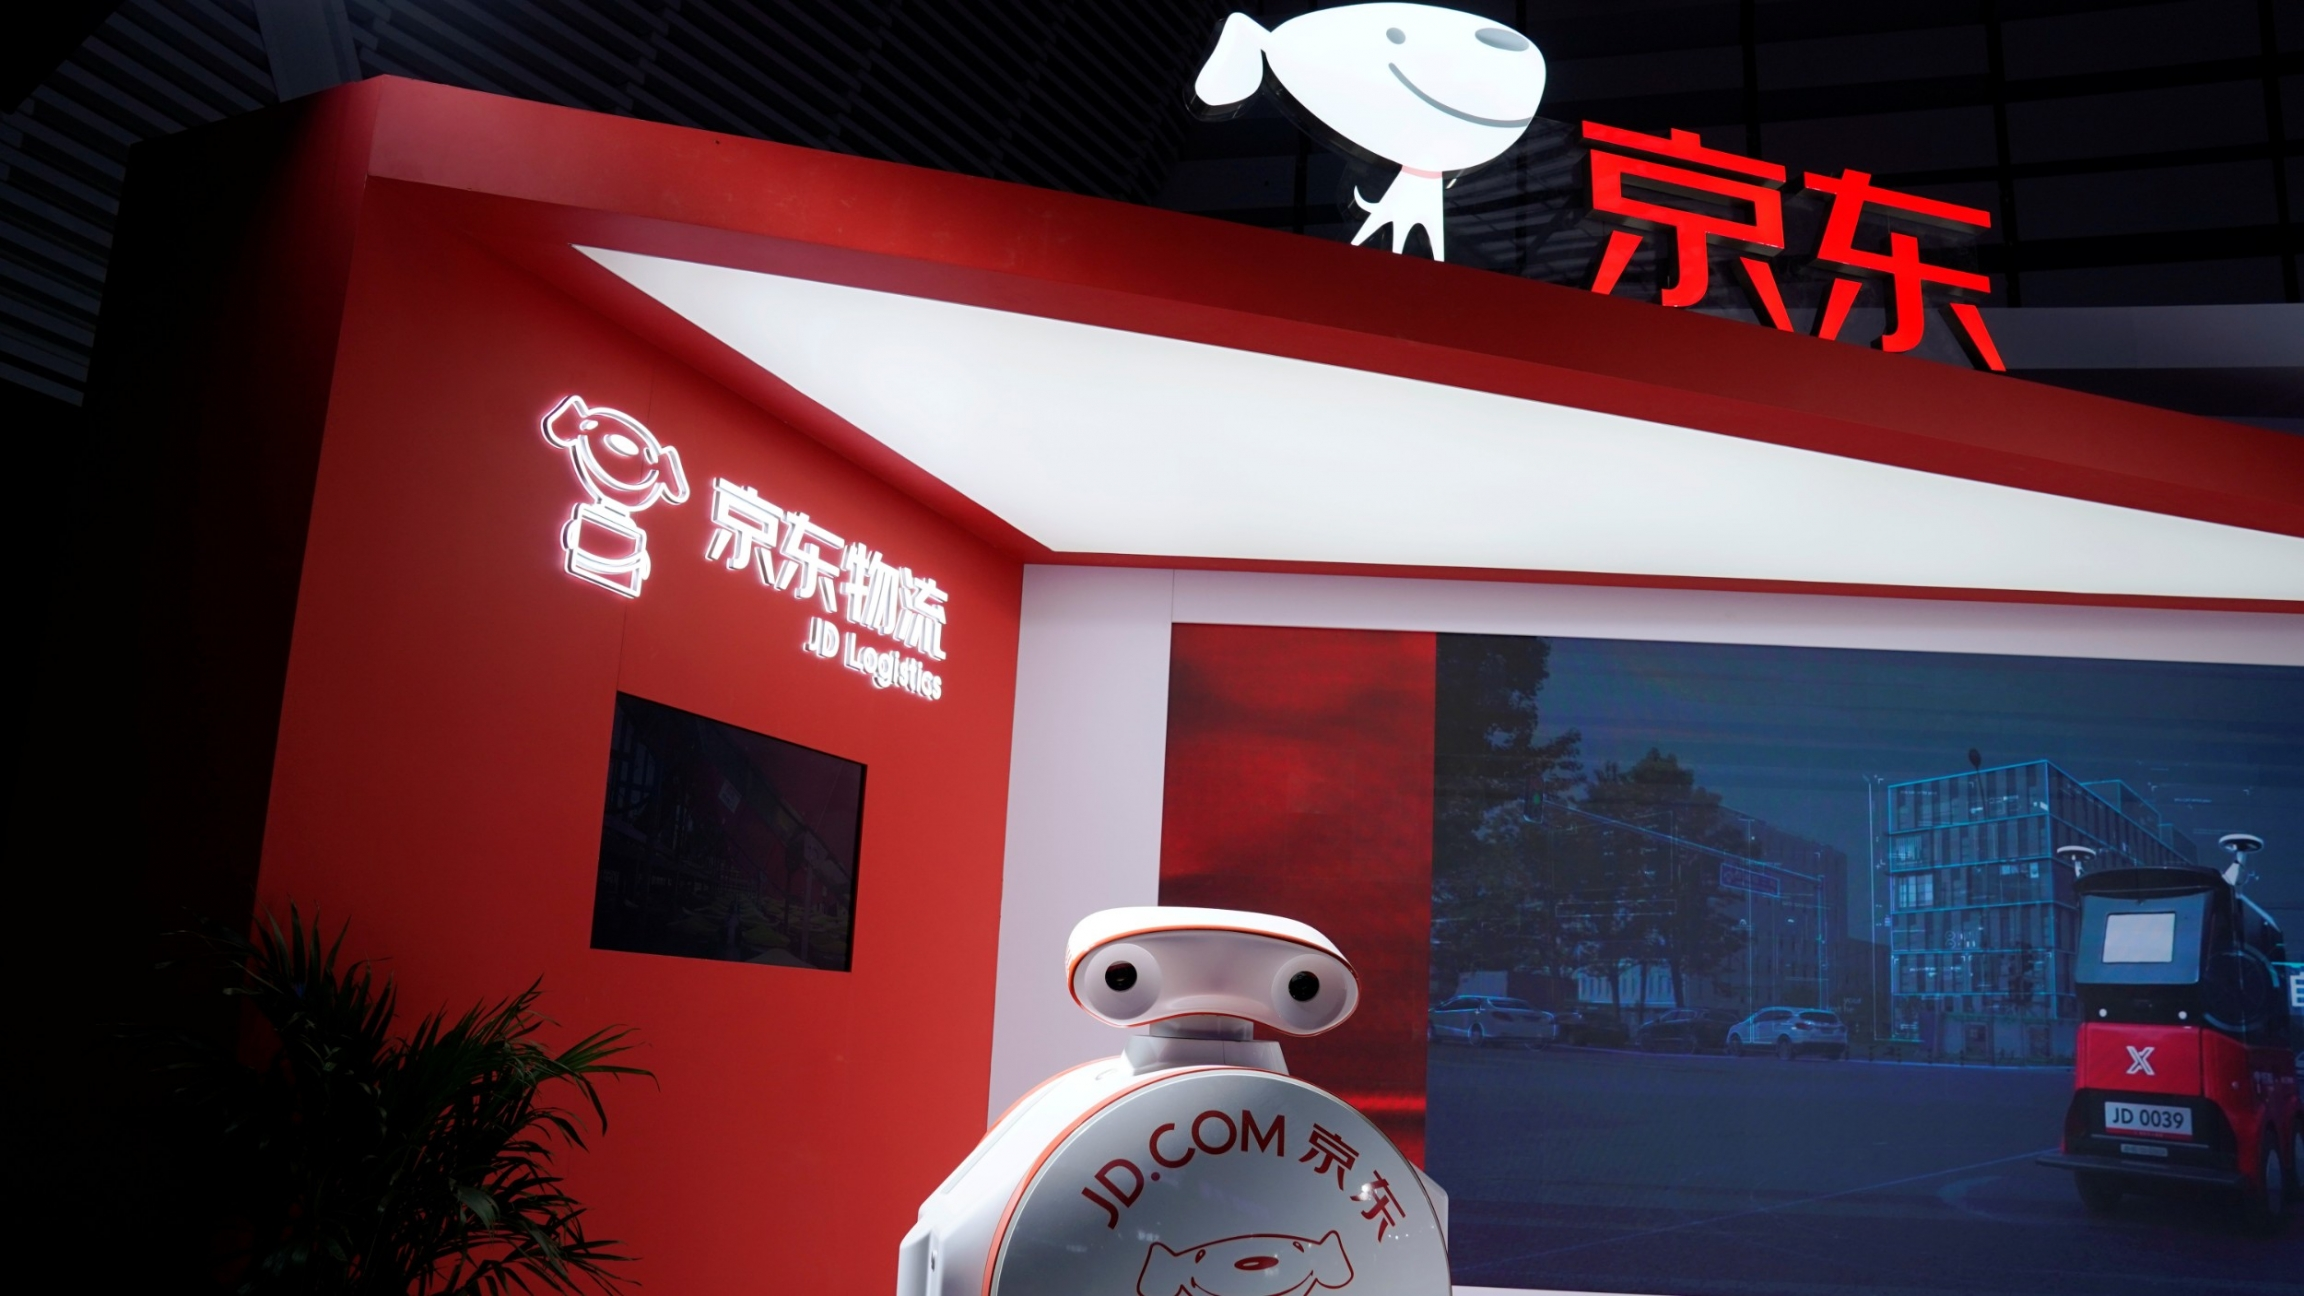 A JD.com sign is seen at the World Internet Conference in Wuzhen, Zhejiang province, China, Oct. 20, 2019.